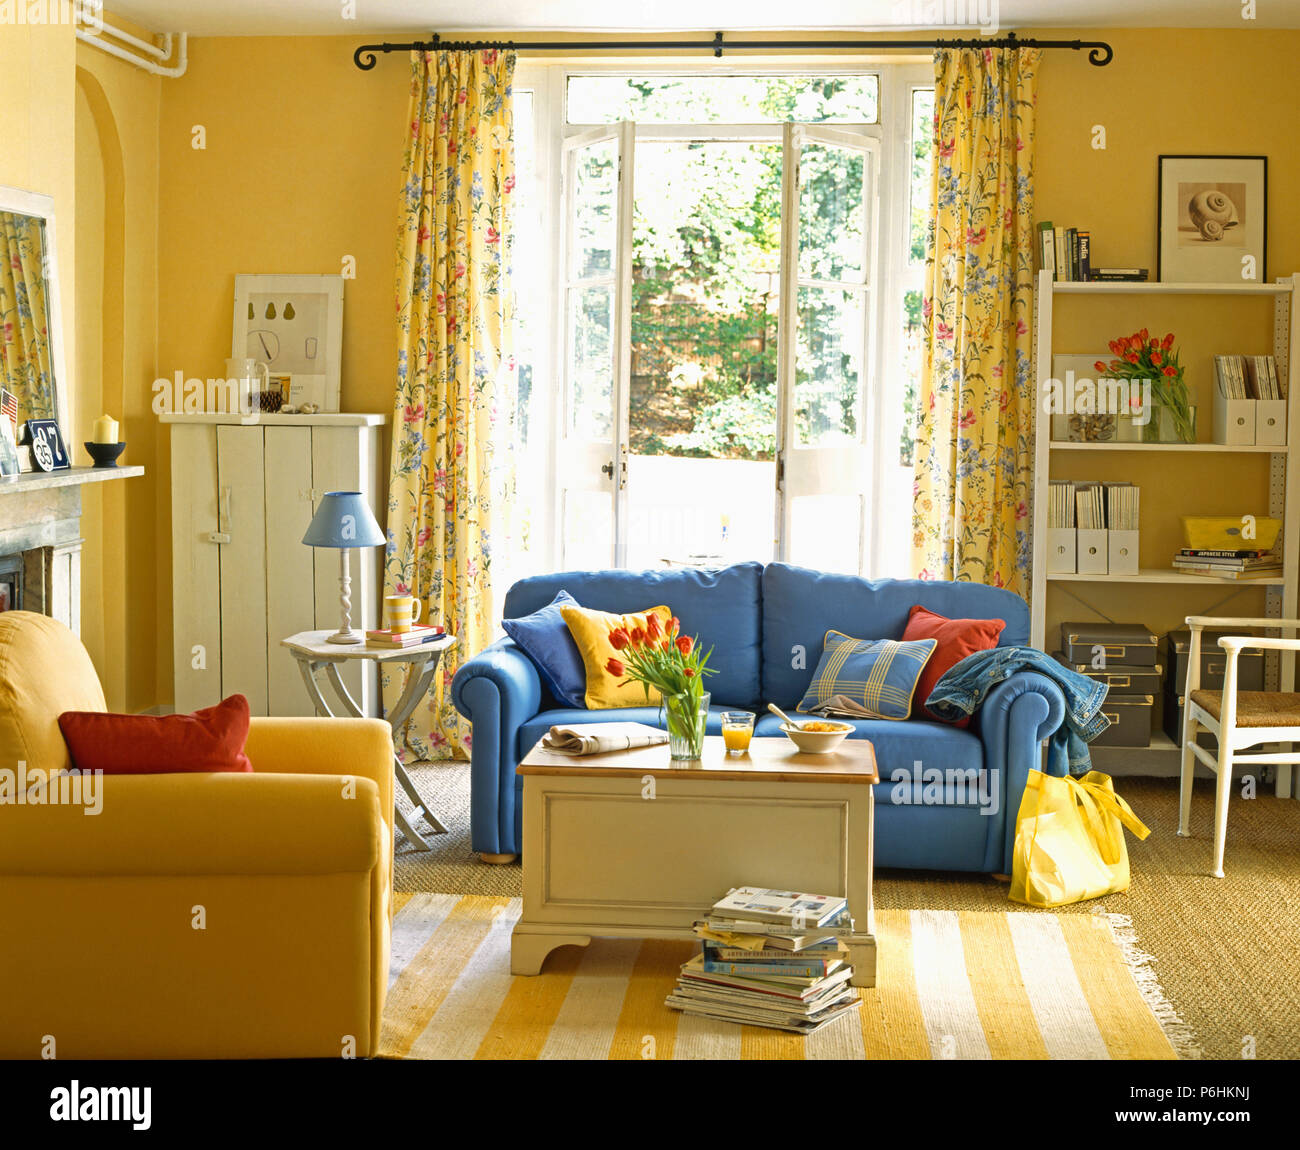 Blue Sofa And Yellow Striped Rug In Yellow Living Room With Painted Chest And French Windows With Floral Curtains Stock Photo Alamy